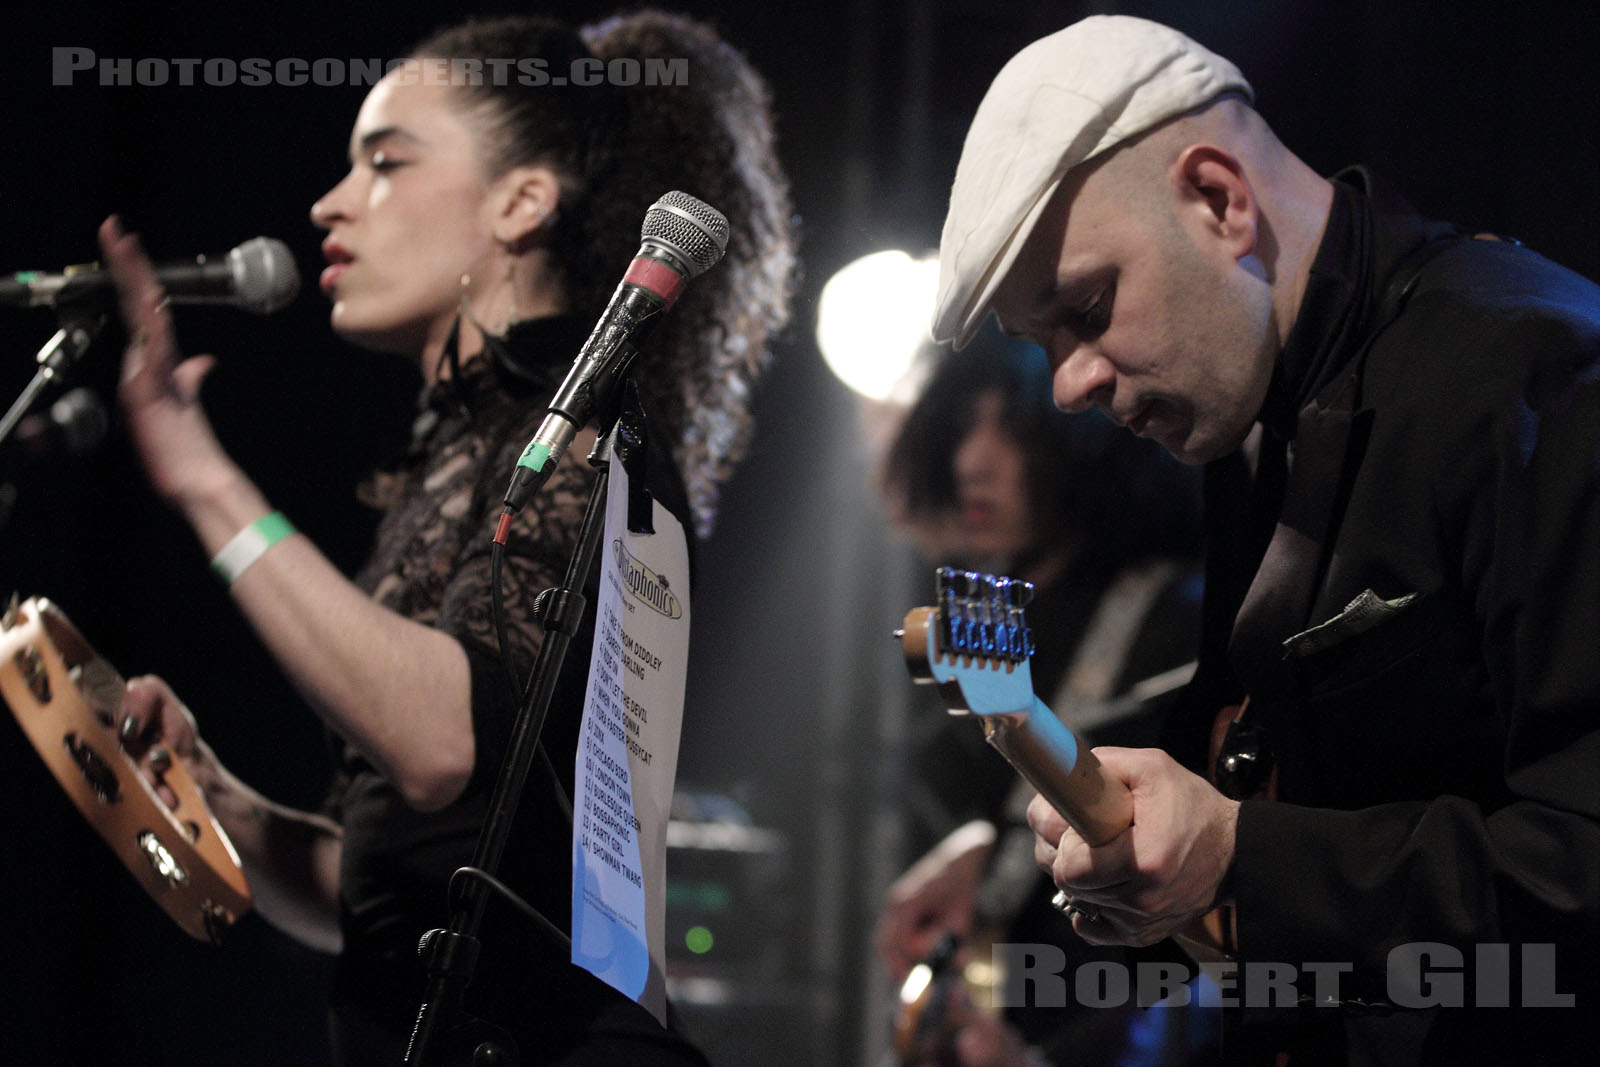 THE DUSTAPHONICS - 2012-04-04 - PARIS - La Fleche d'Or